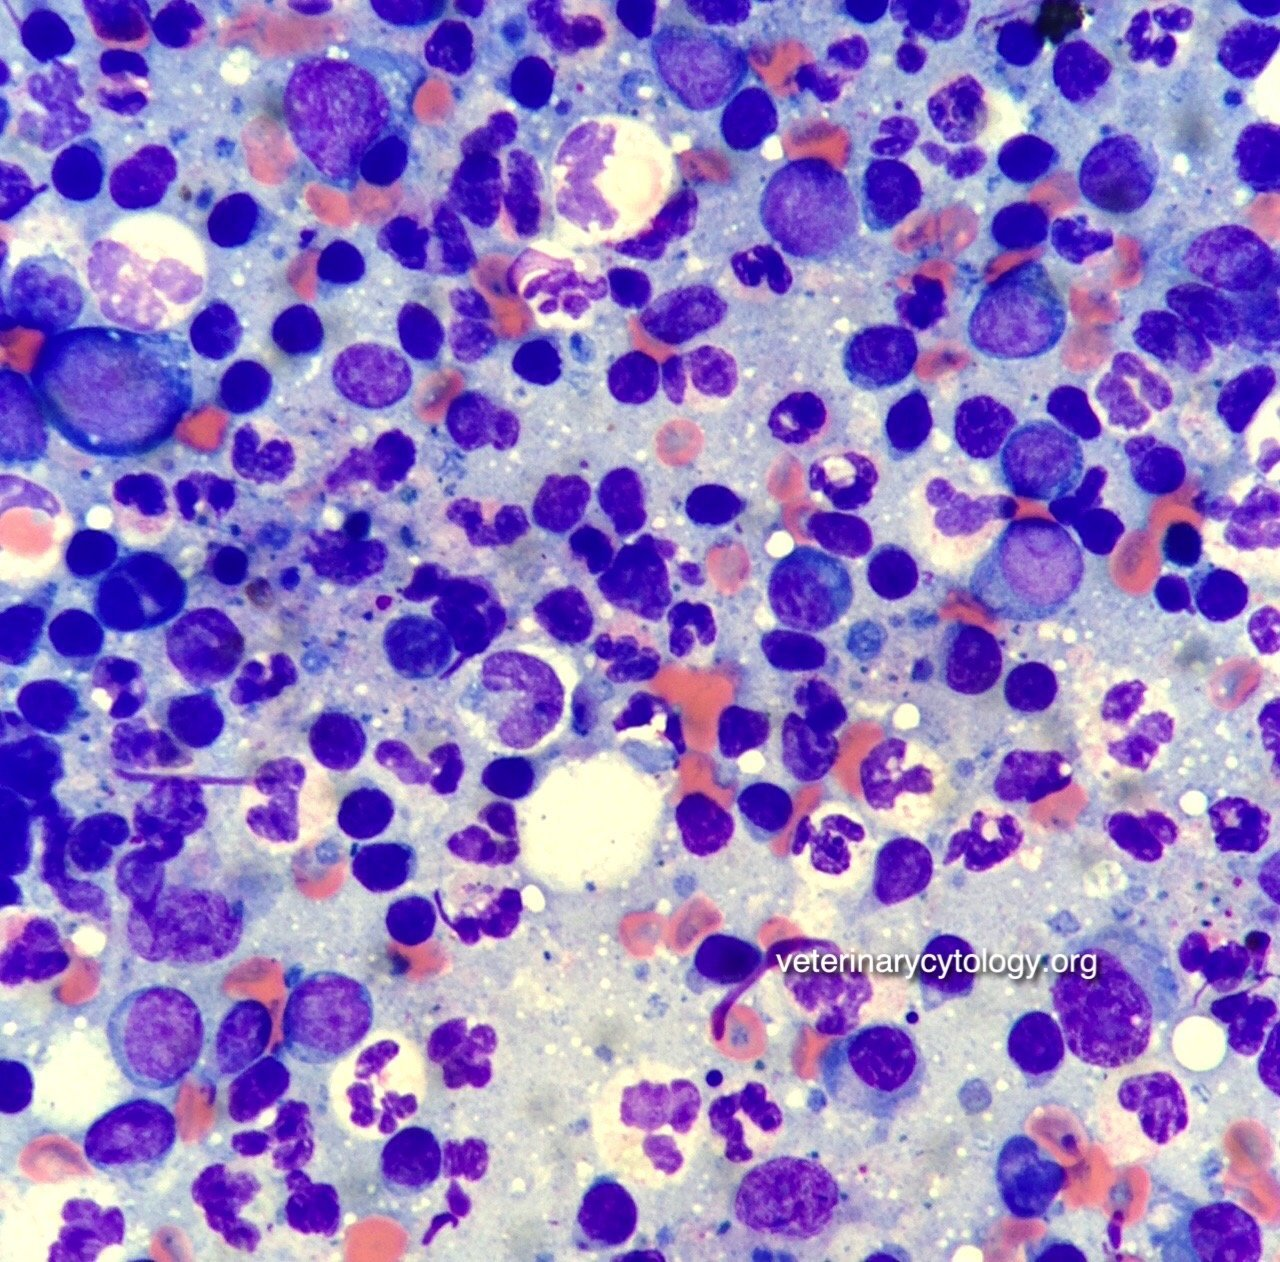 Neutrophilic lymphadenitis, lymph node, dog.